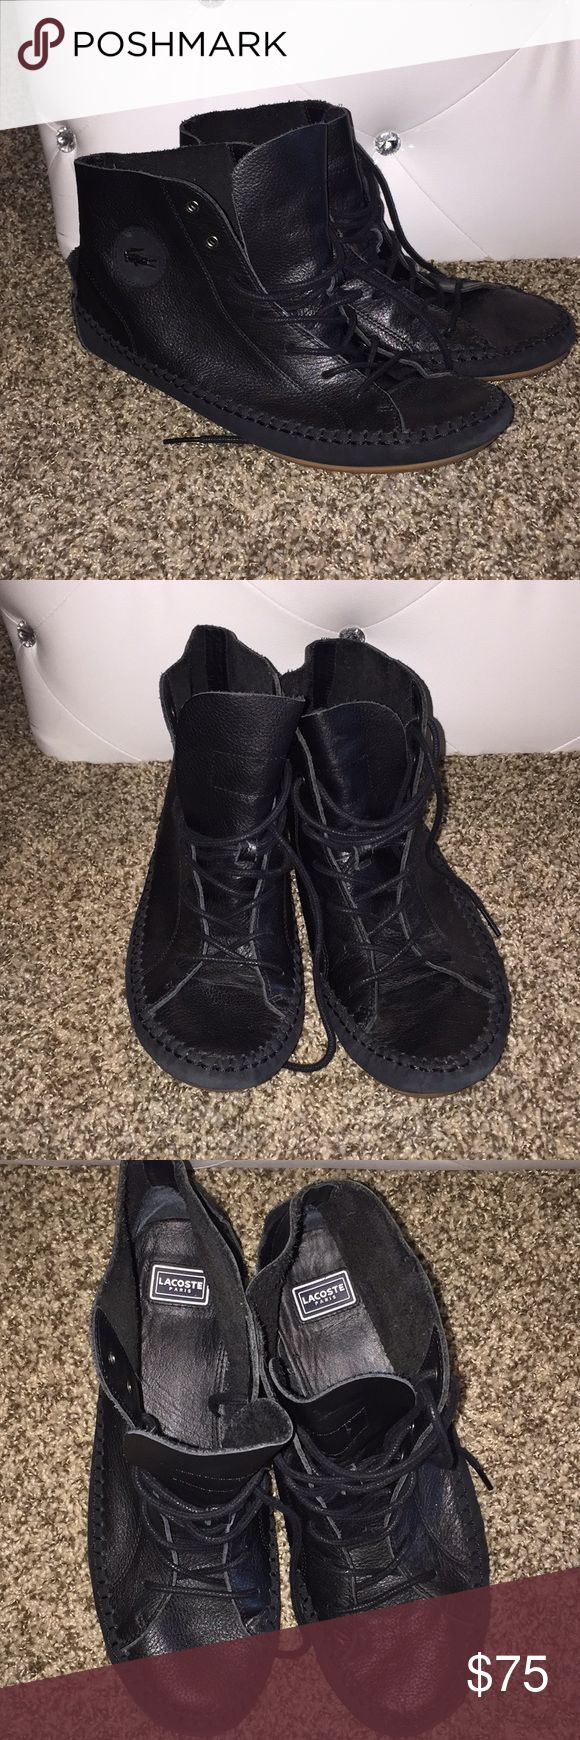 Women's Lacoste Moccasin Booties Excellent condition. Worn only once. Leather moccasins with rubber soles. Lacoste Shoes Moccasins